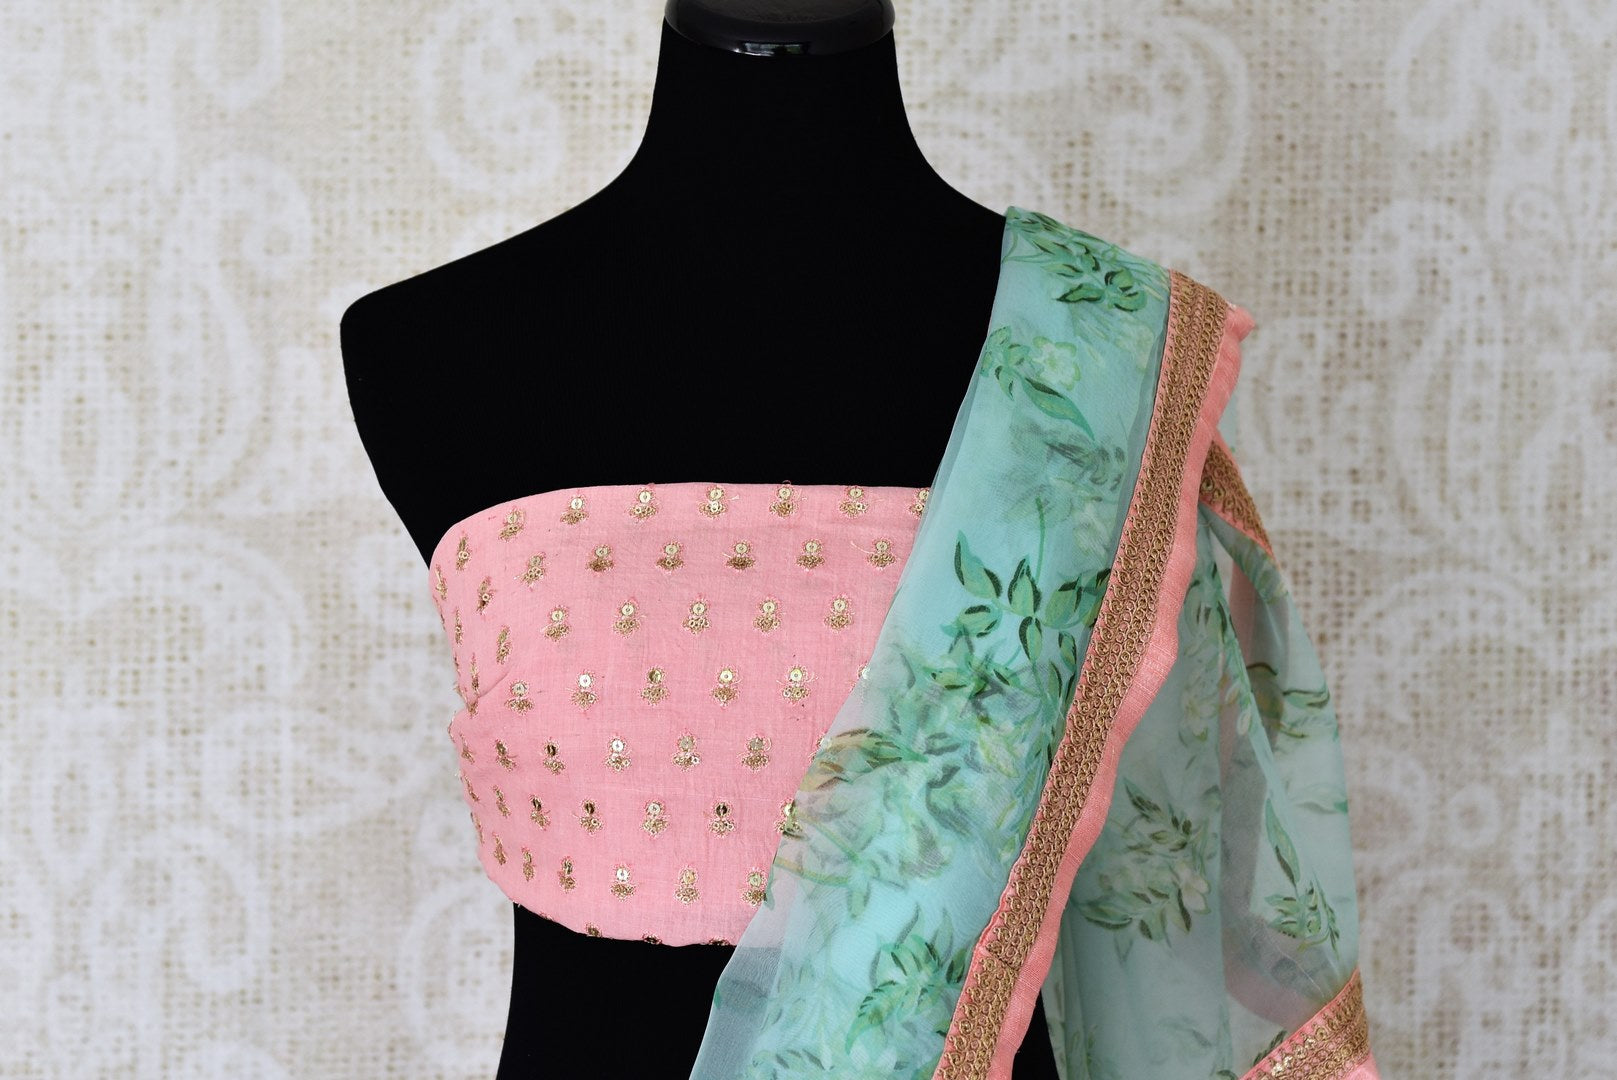 Buy beautiful blue floral print organza saree online in USA with pink embroidered border. Take your Indian style a notch up with a range of beautiful Indian clothing from Pure Elegance clothing store. We have a range of traditional Indian sarees, designer sarees, handloom saris in USA online and in our store. Shop now. -blouse pallu